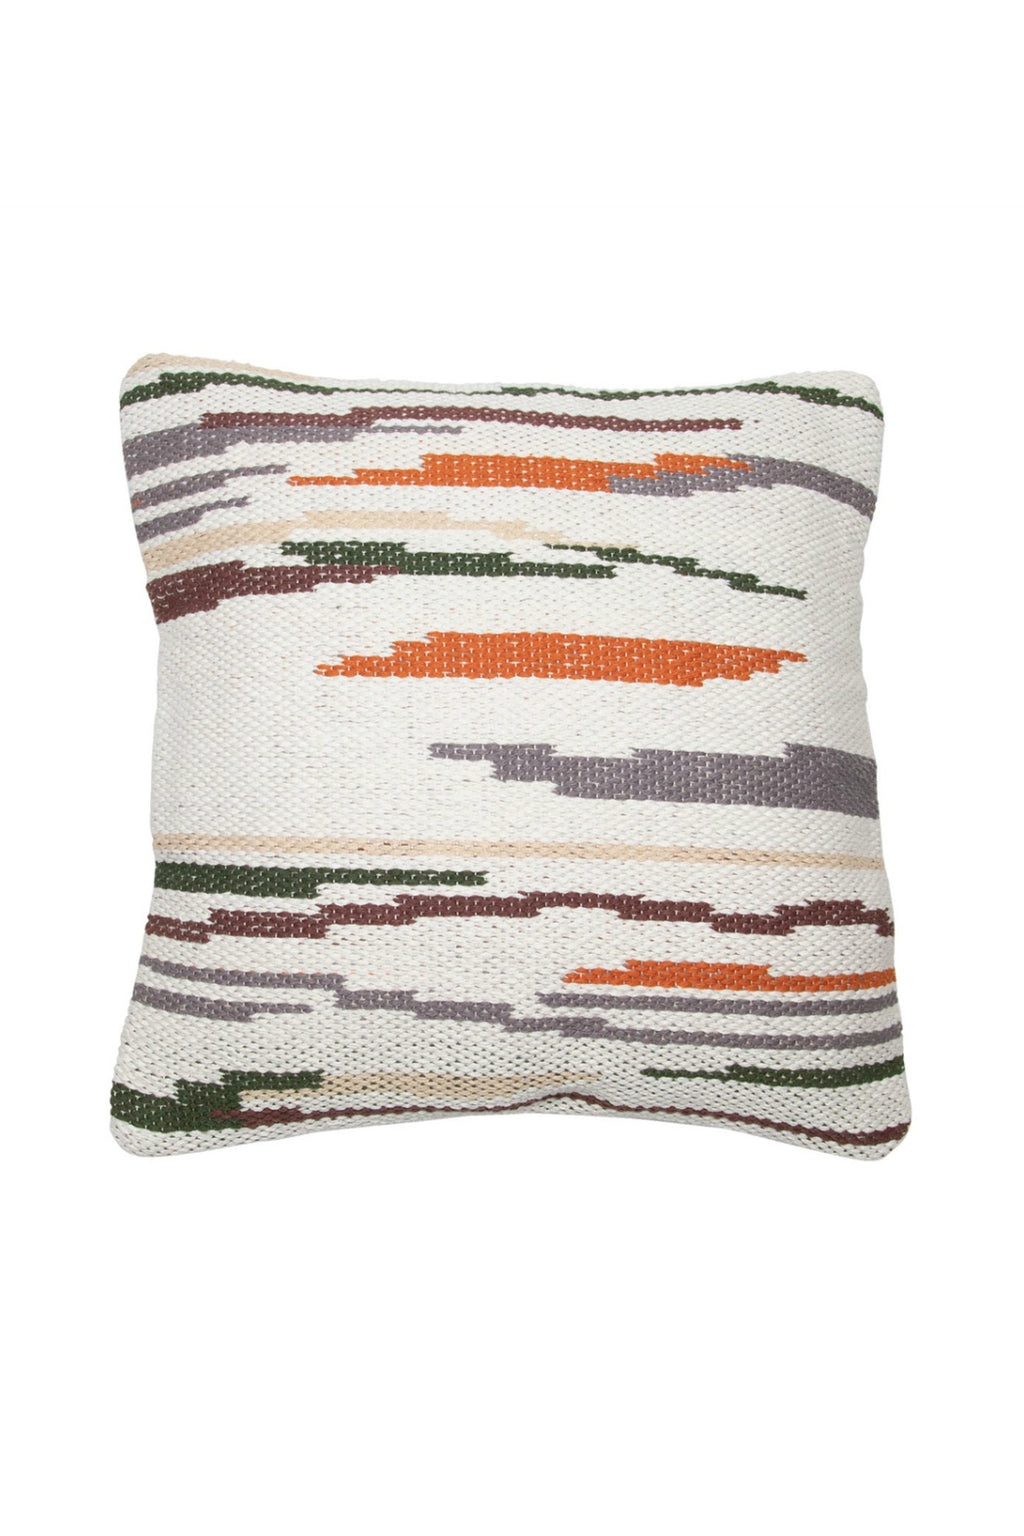 Foreside Hand Woven Hayes Pillow in Neutral